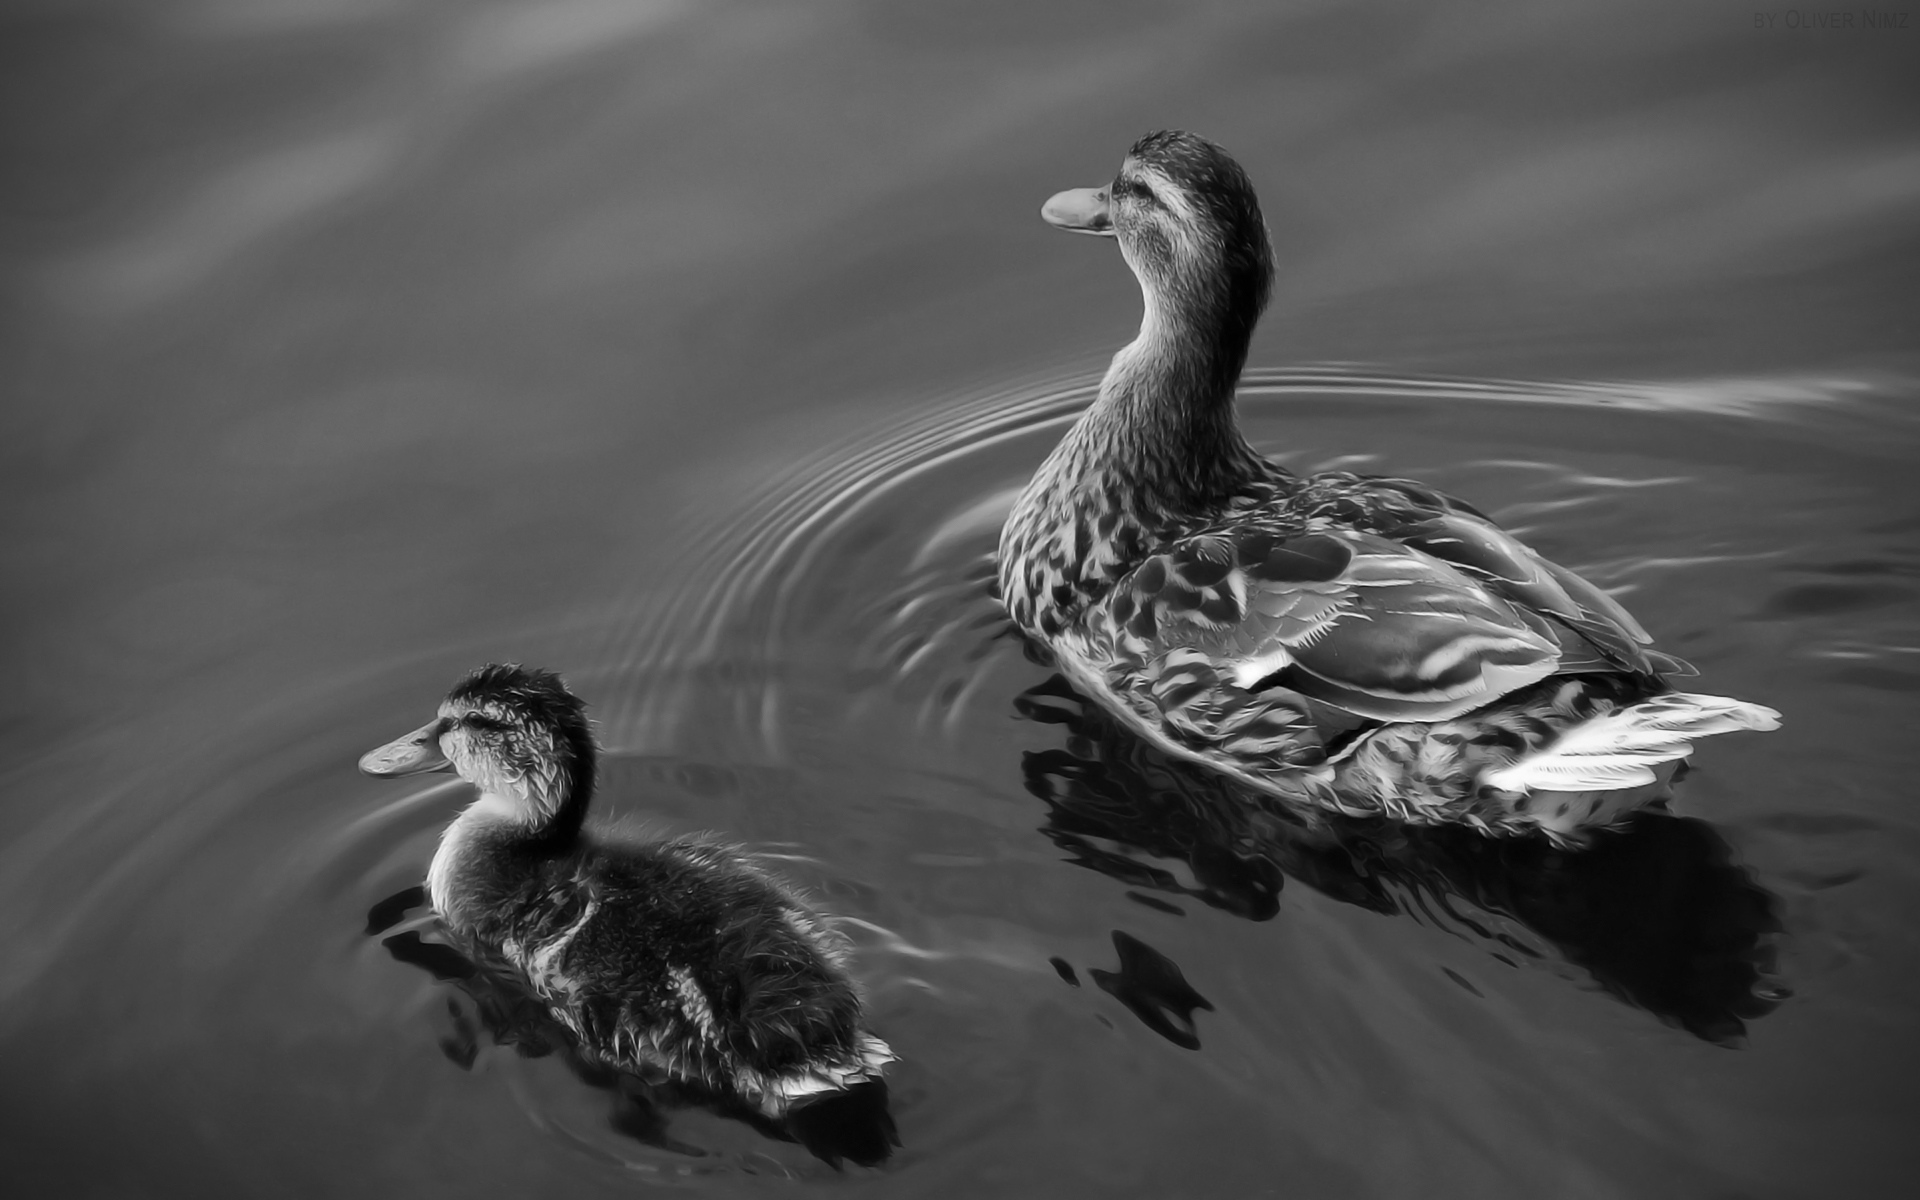 Black-and-white photo of ducks and duck high resolution